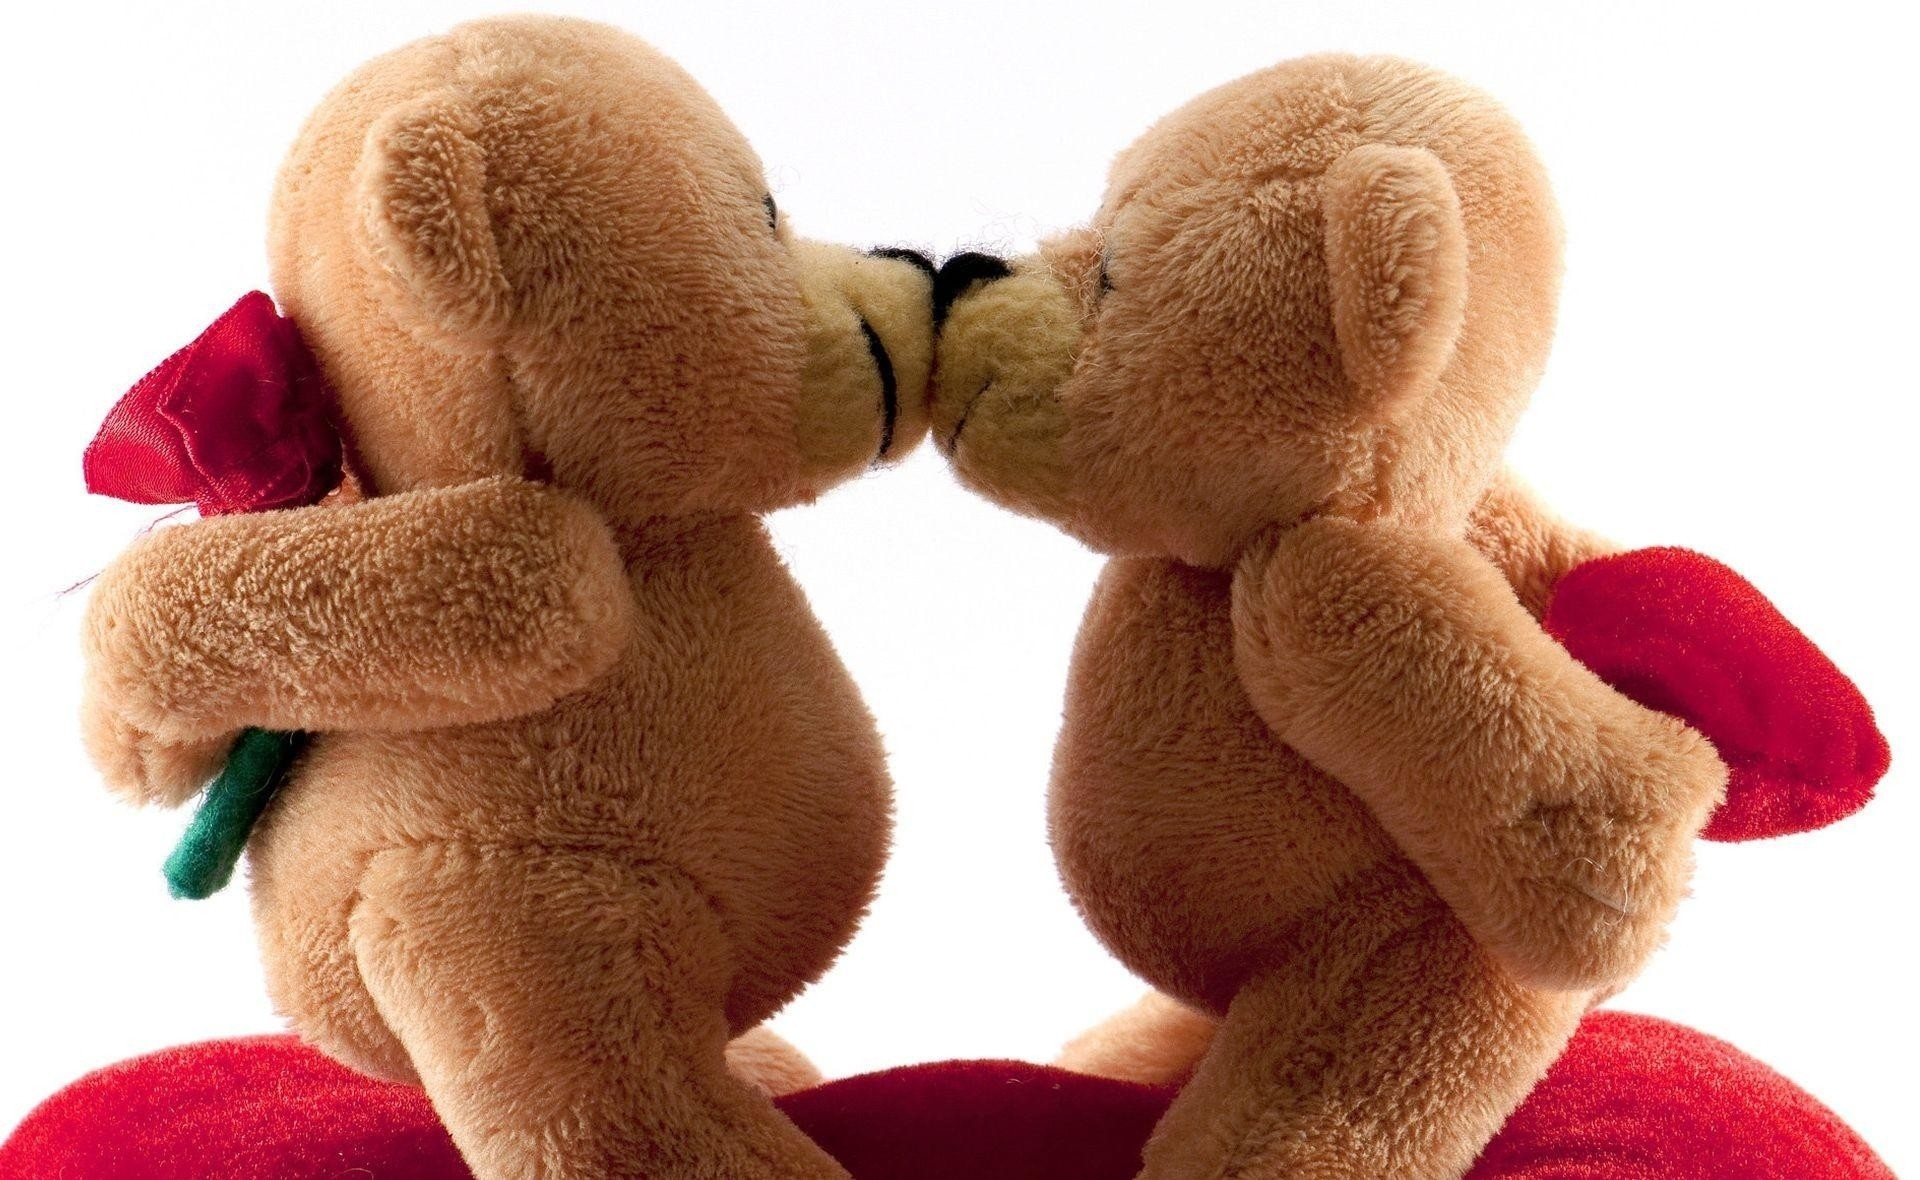 Happy Teddy Day 2017 Images wallpaers pictures (24)